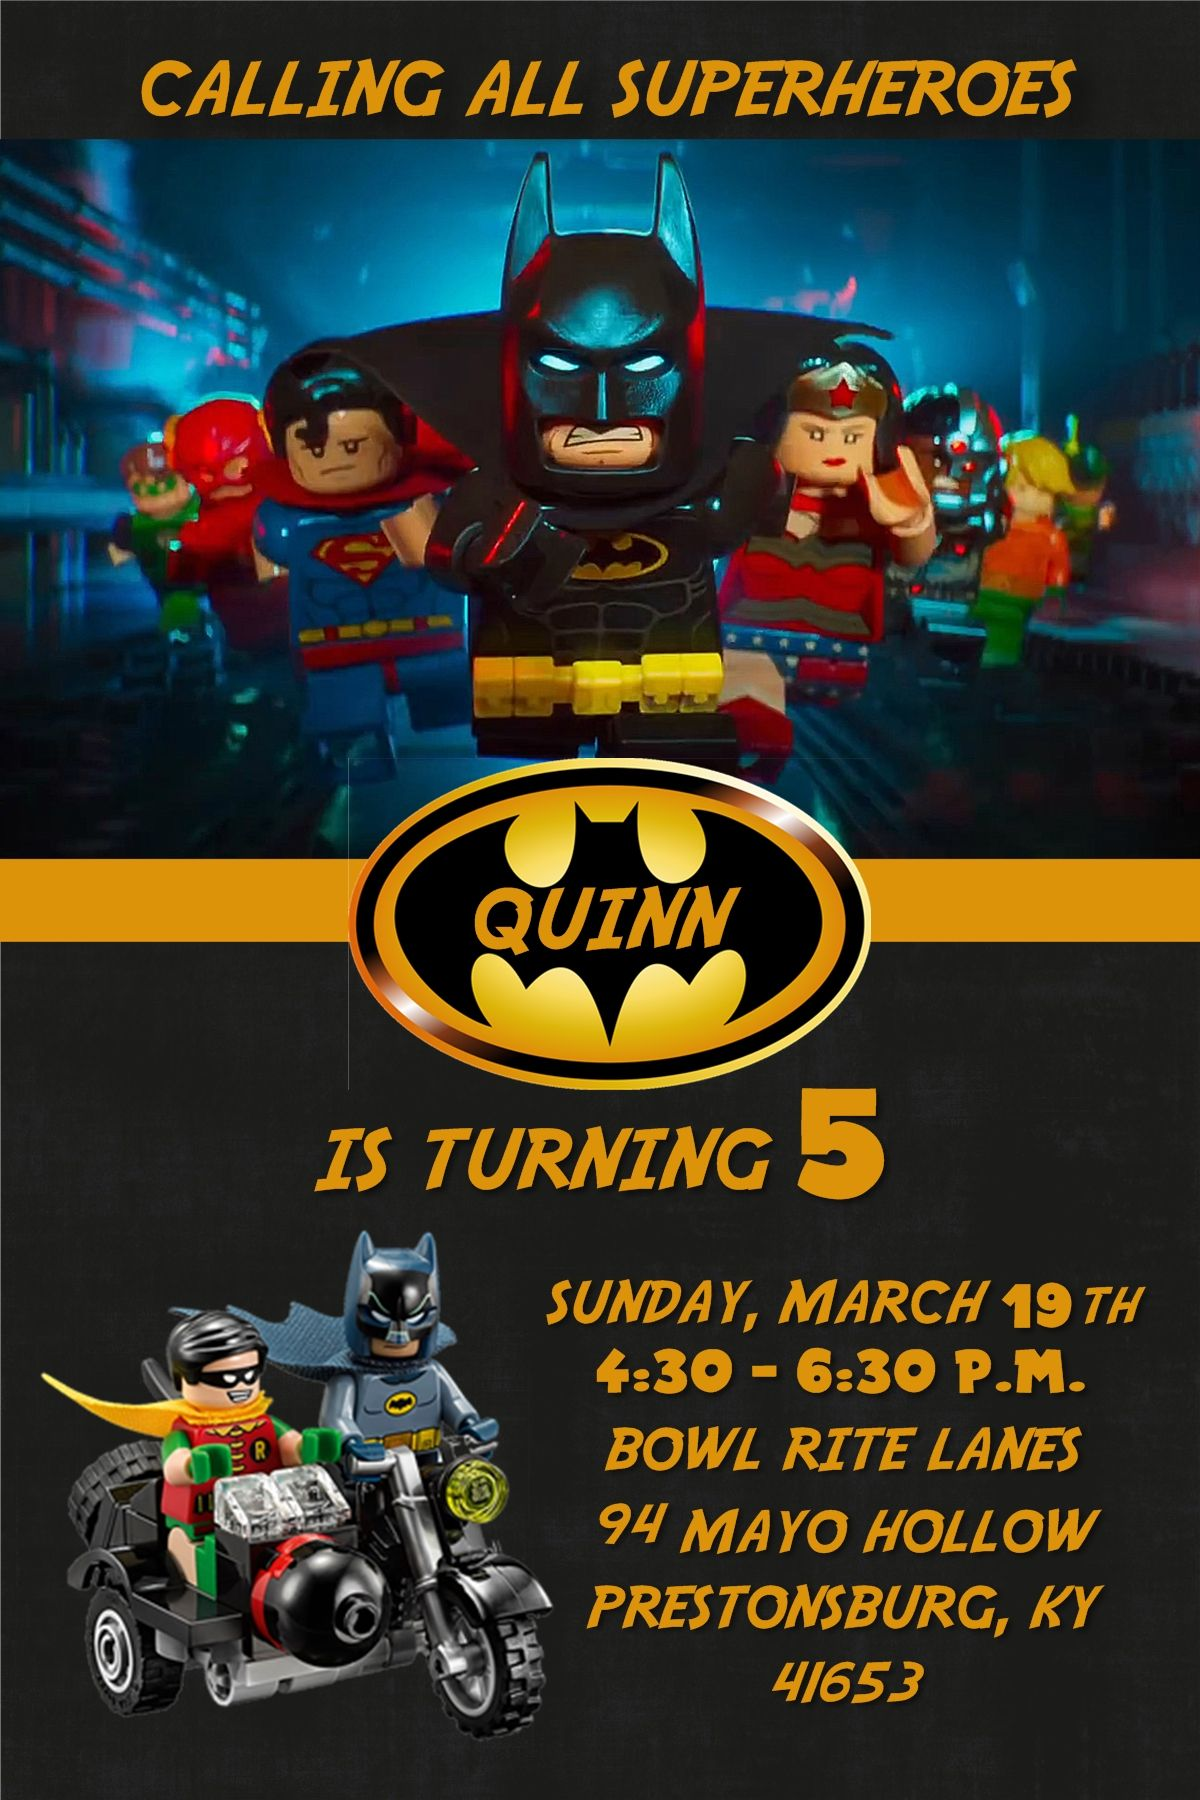 Lego batman birthday invitation contact me via email at lego batman birthday invitation contact me via email at aswiney01yahoo or stopboris